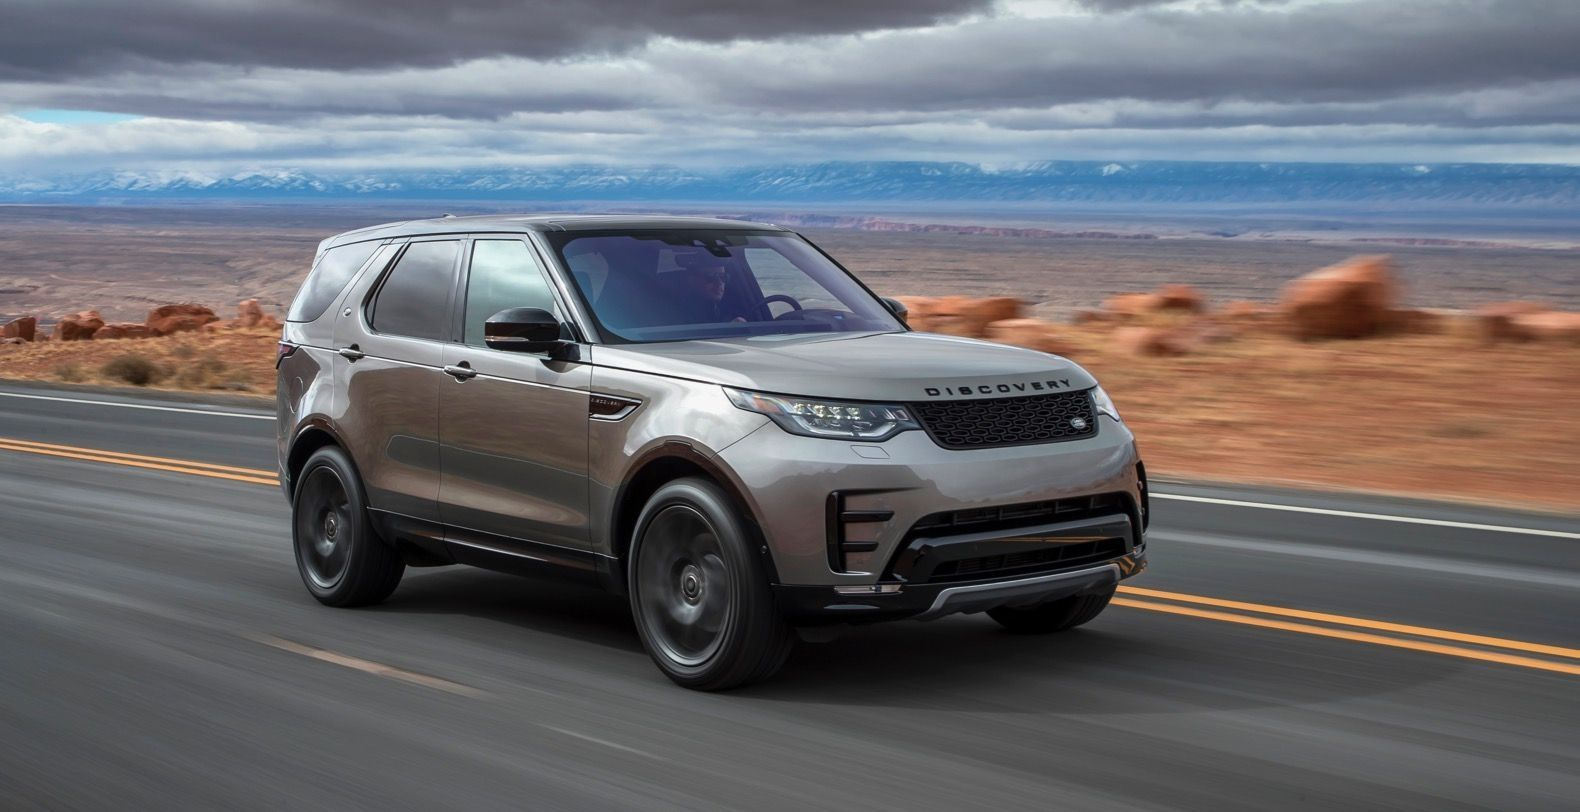 2019 Land Rover Discovery Performance Car Price 2019